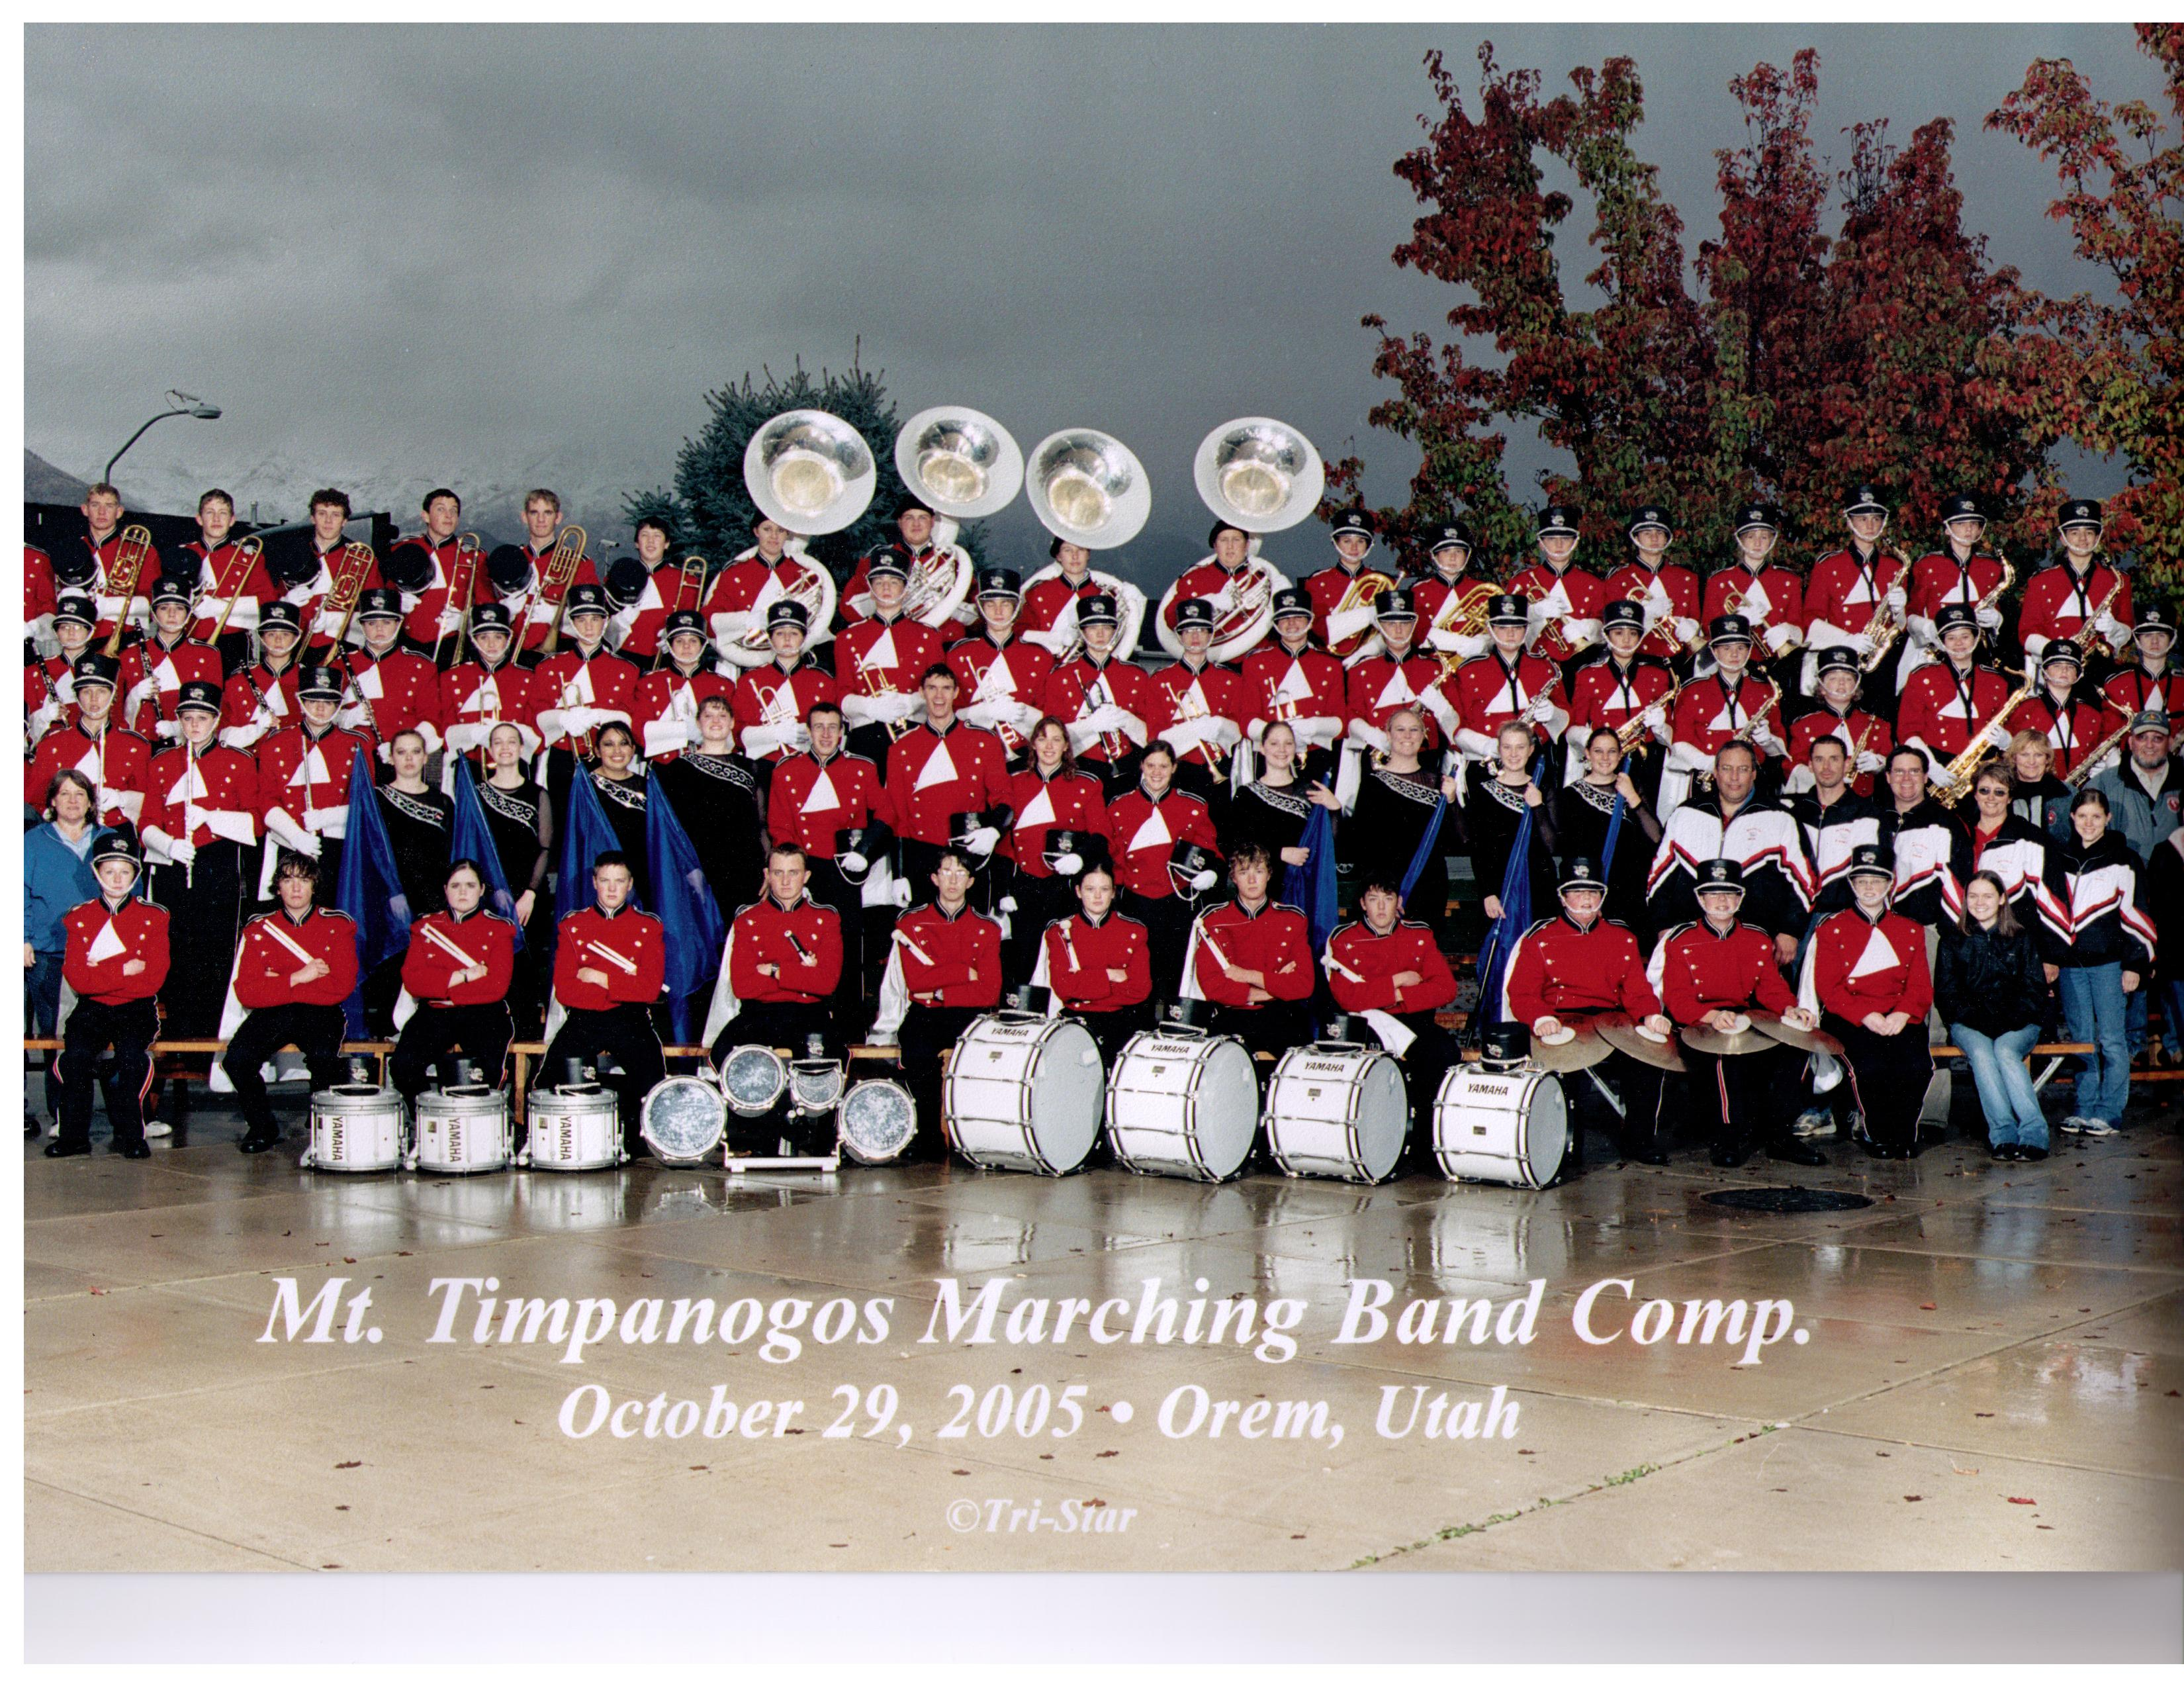 Madison band pictures marching band 2005 publicscrutiny Image collections